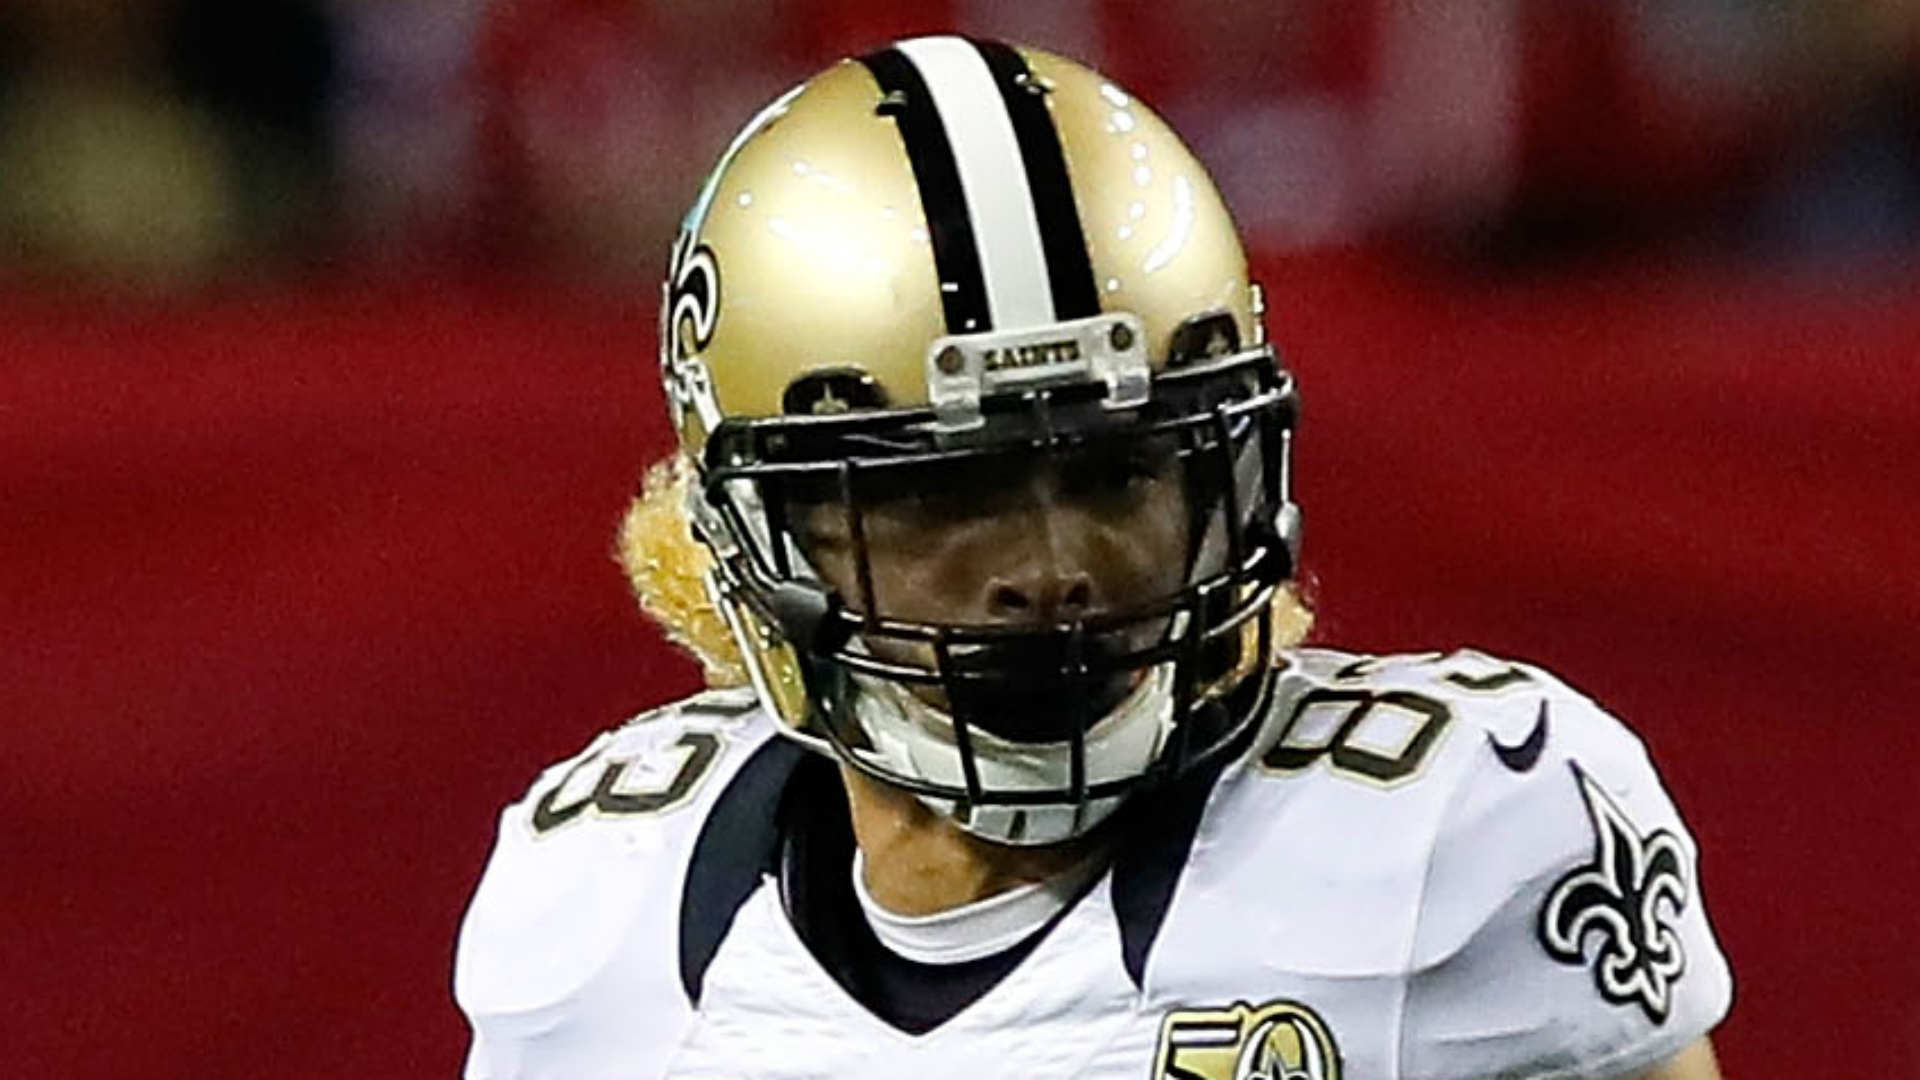 Saints WR Willie Snead suspended for 3 games